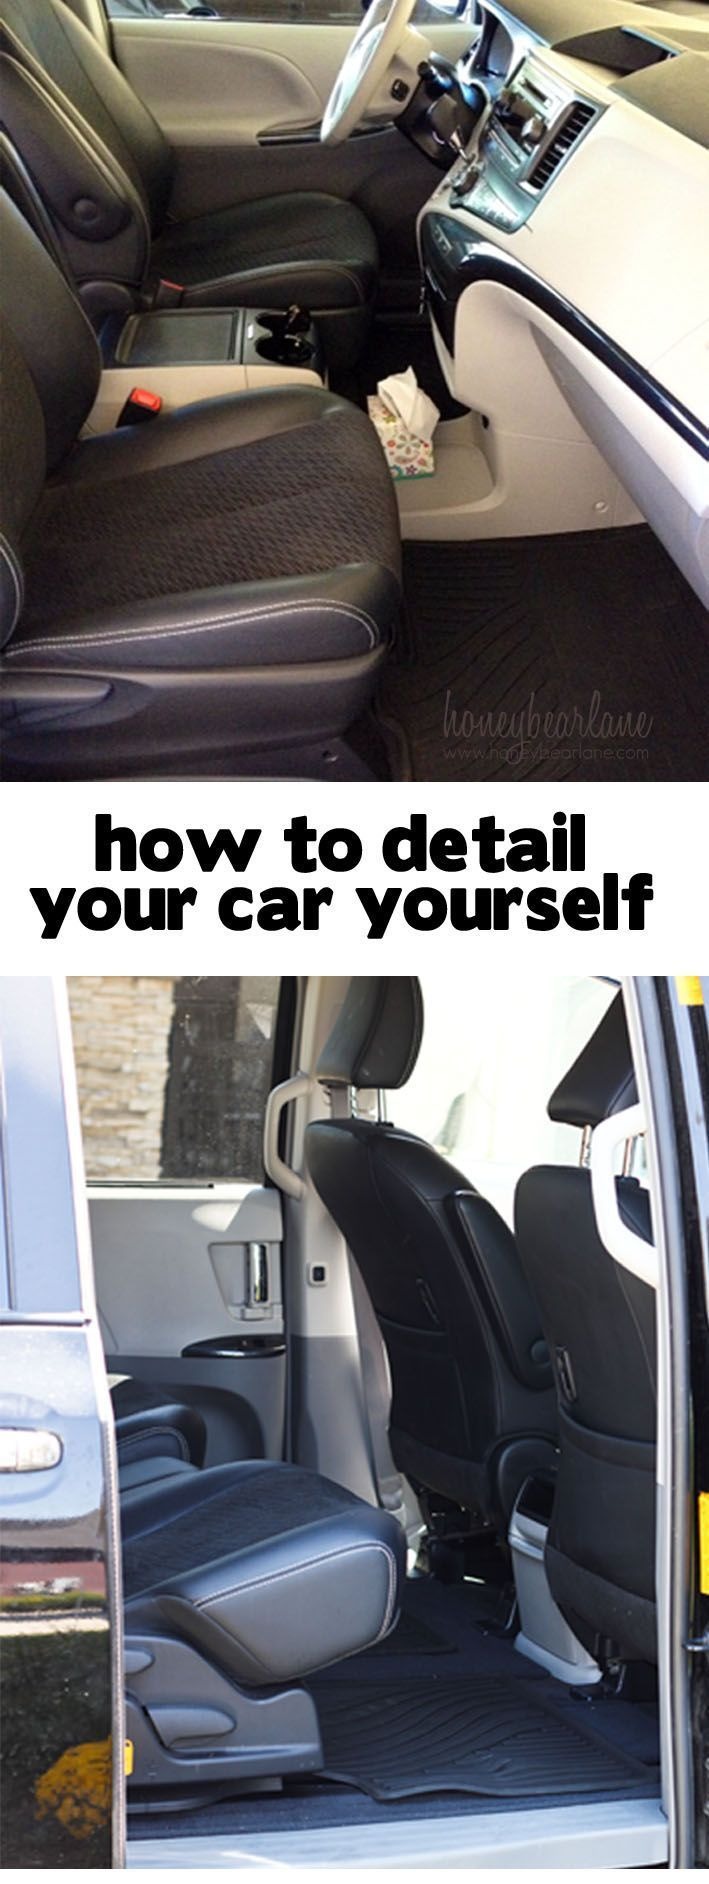 How to detail your car yourself cars explore pinterest cars how to detail your car yourself cars explore pinterest cars carcare explore pinterest carcare diy diyprojects doityourself diyideas solutioingenieria Choice Image